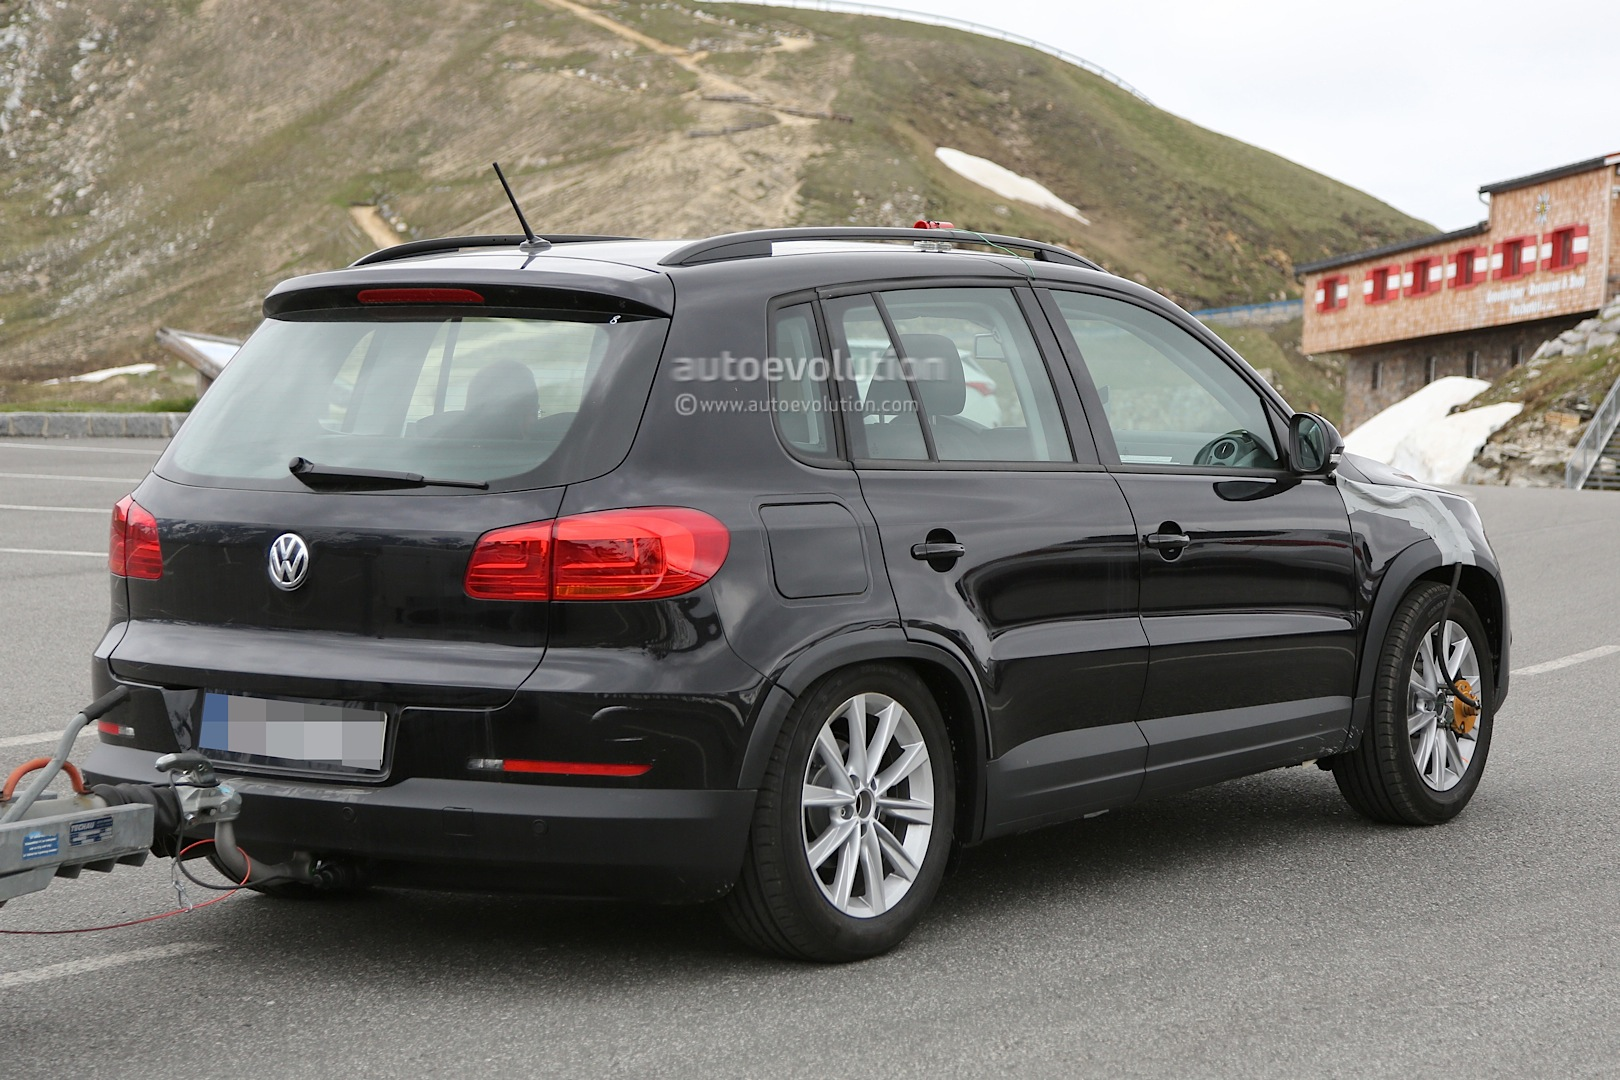 2016 Volkswagen Tiguan Spy Photos: First Glimpses of the Interior